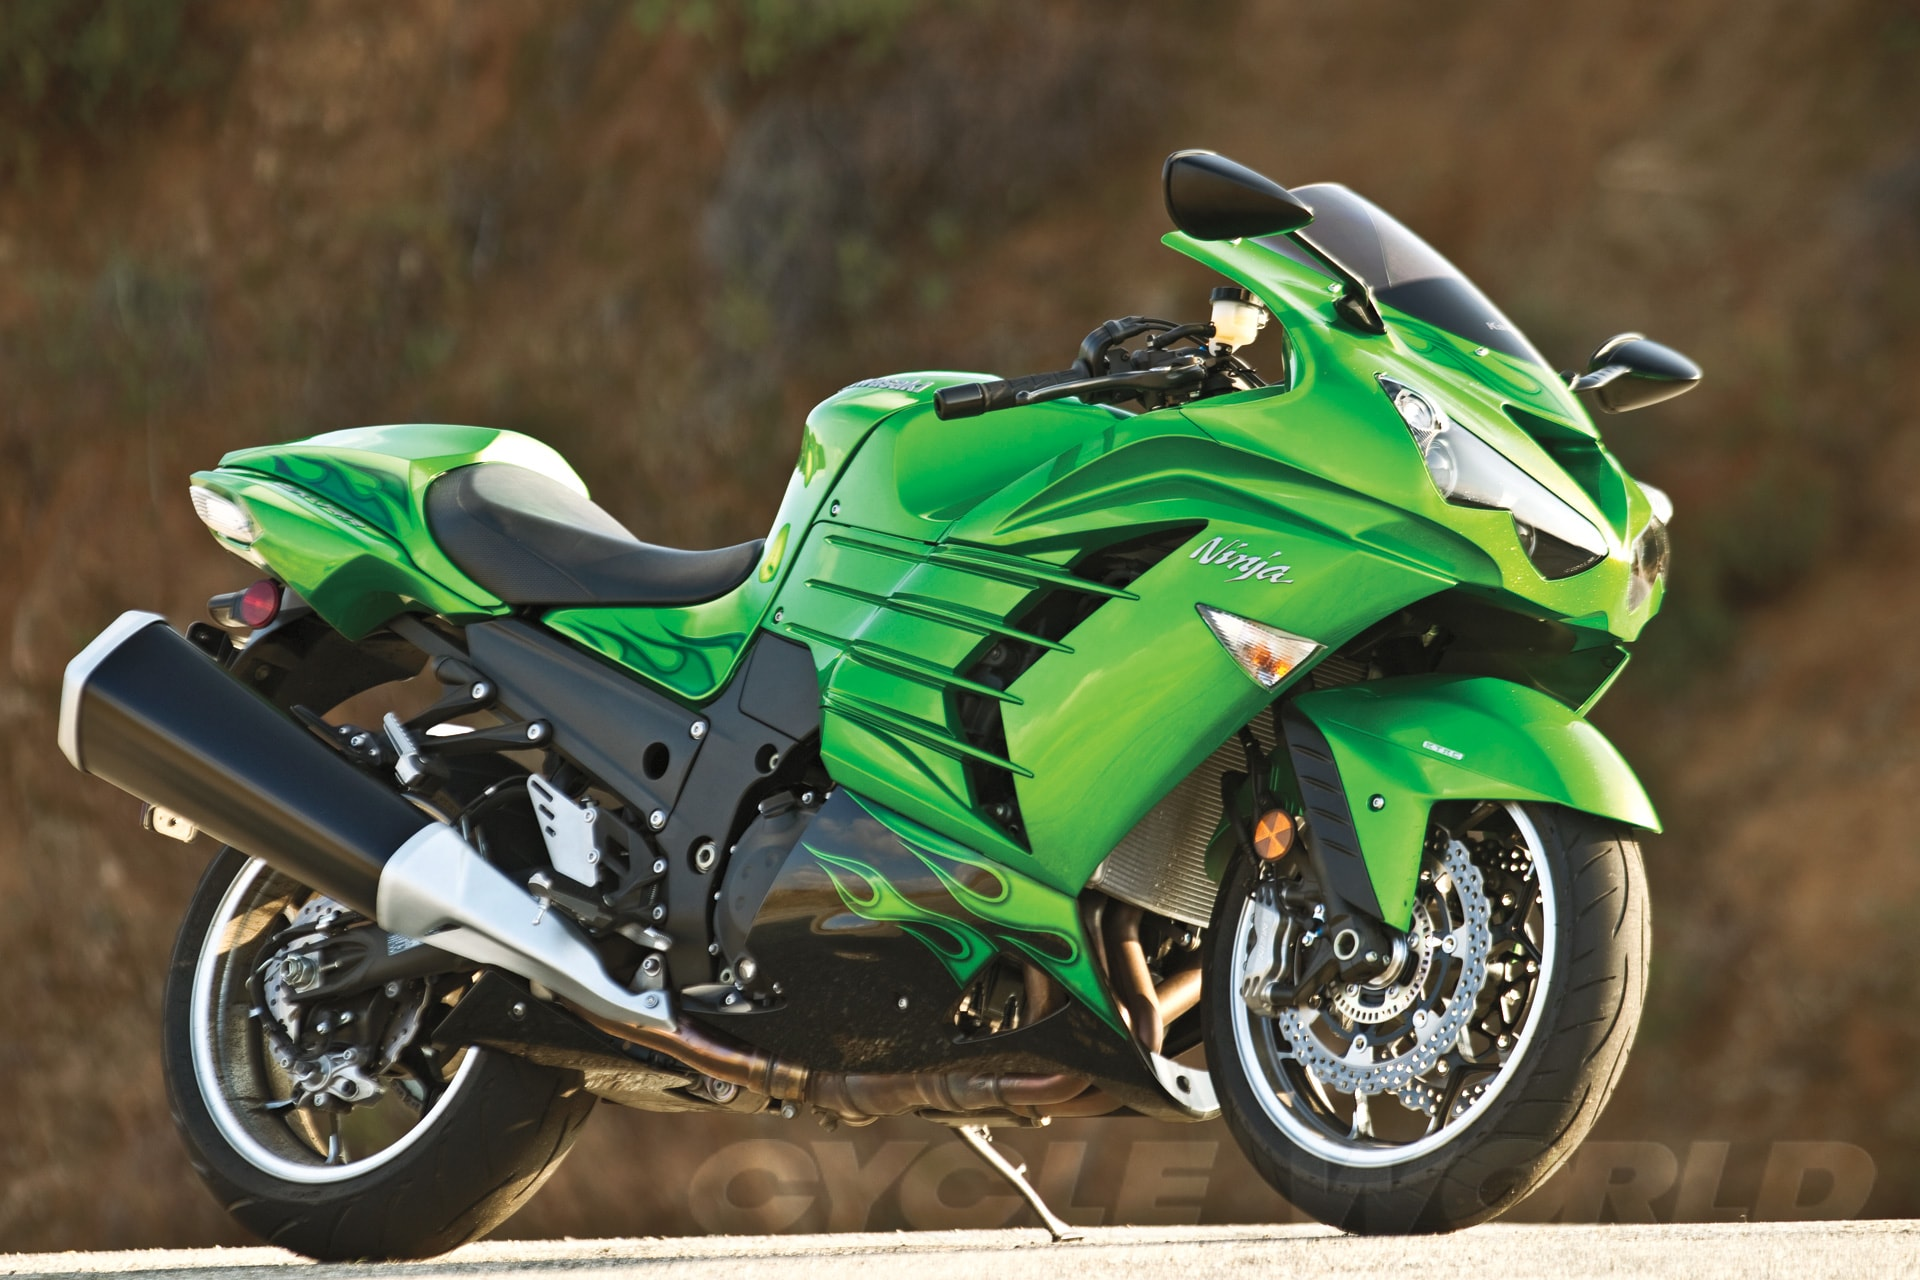 2012 Kawasaki Ninja ZX-14R HD Desktop Wallpapers | 7wallpapers.net